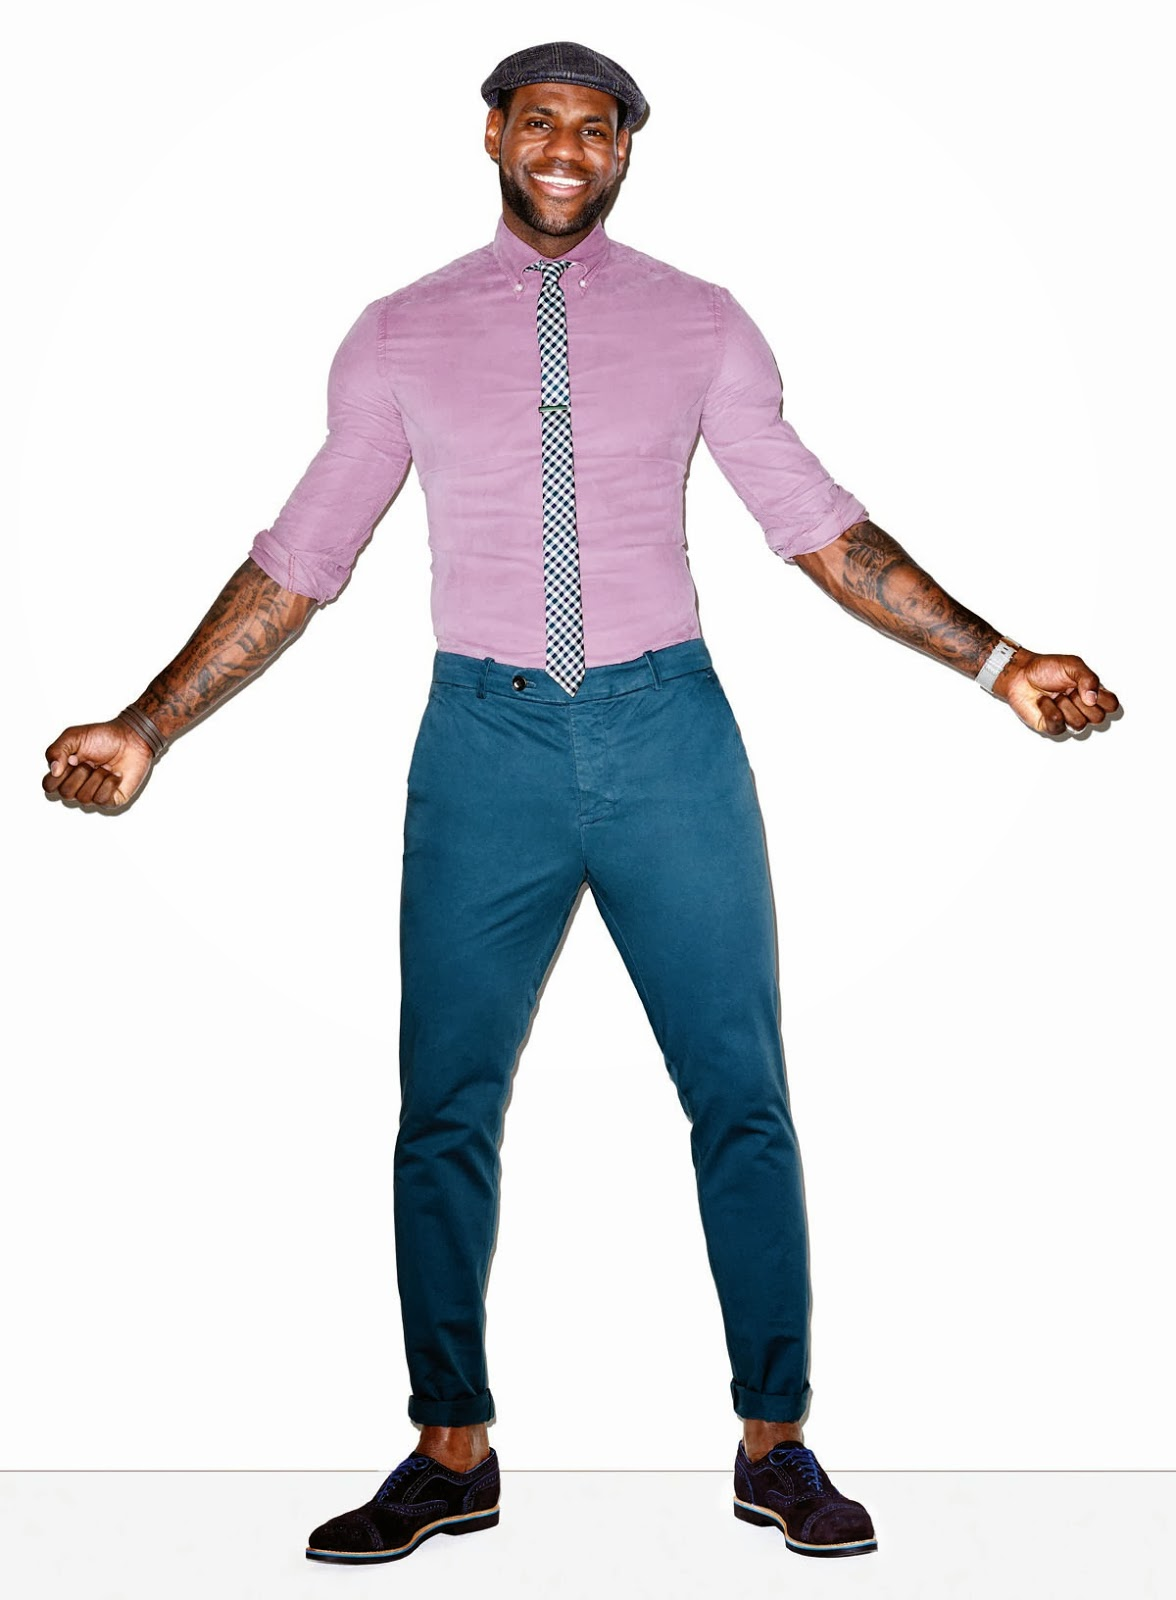 Lebron James Cover Editorial GQ USA March 2014 by Terry Richardson (7)